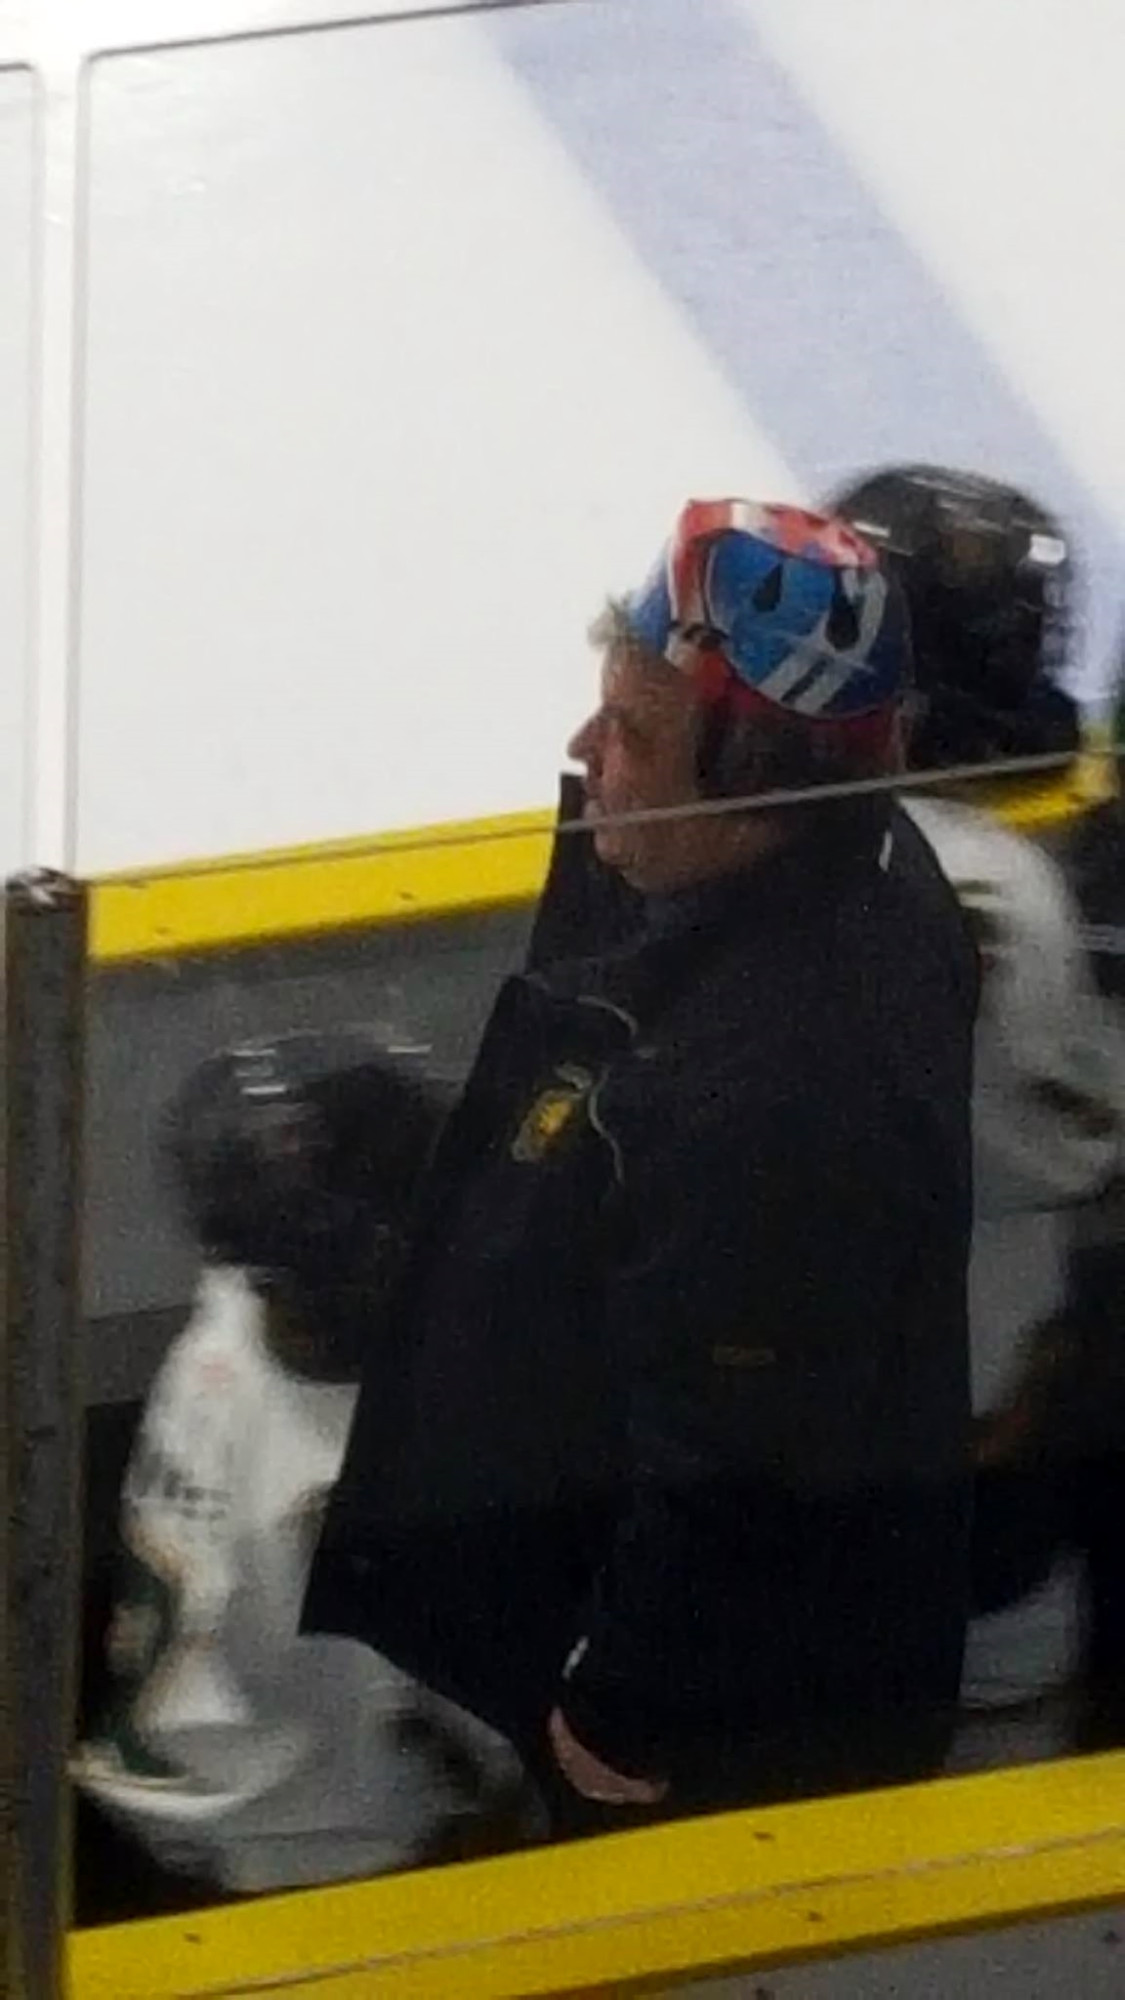 Coach_Darrel_Promised_to_Wear_the_Boston_Pizza_Helmet_for_Championship_Game.jpg